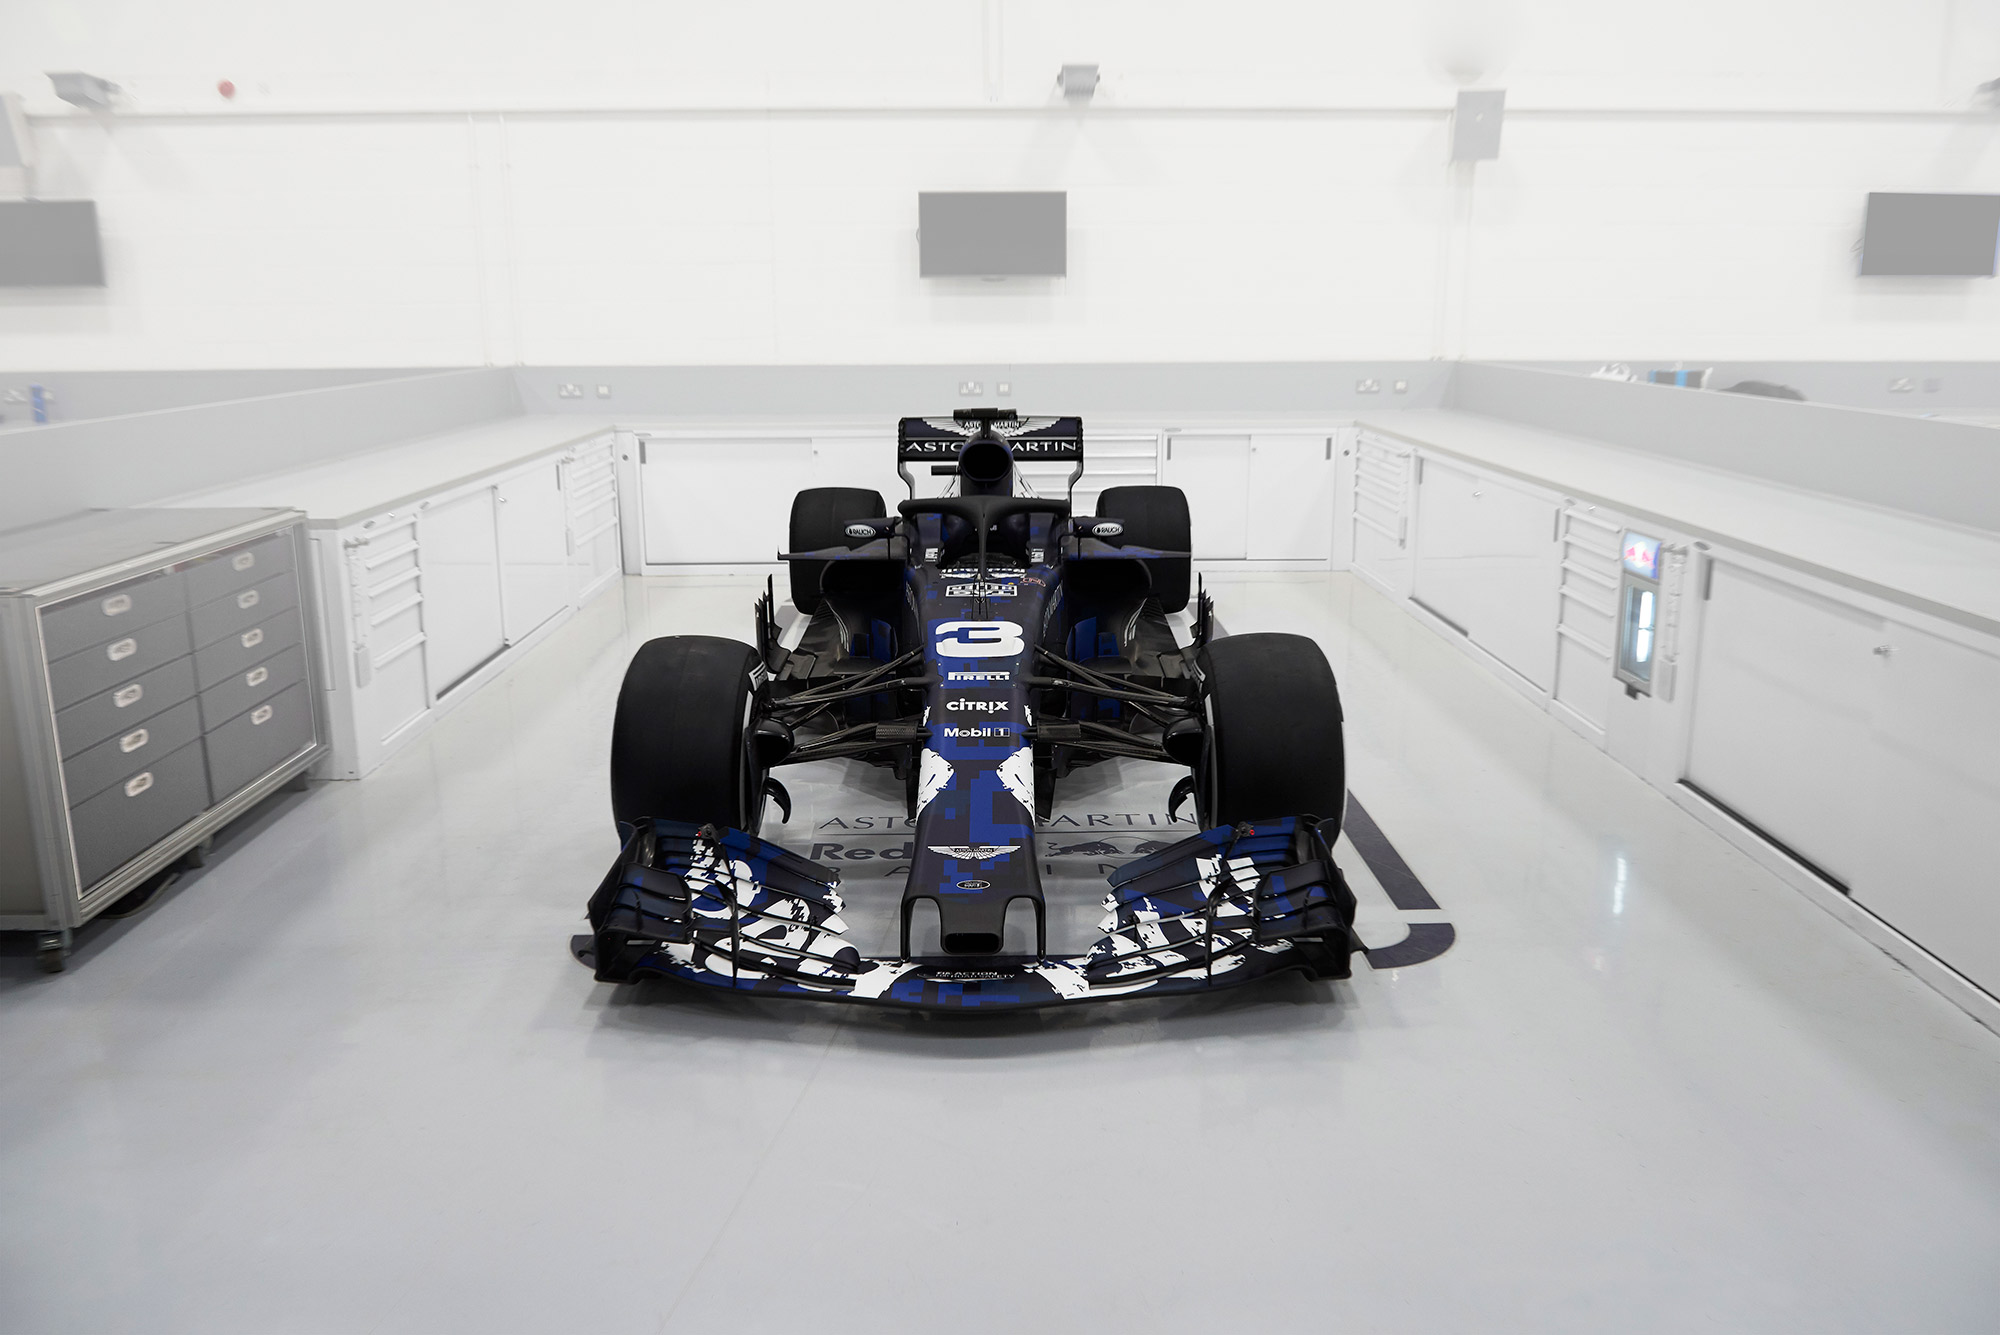 Aston Martin Red Bull Racing - RB14 - F1 2018 - front-face